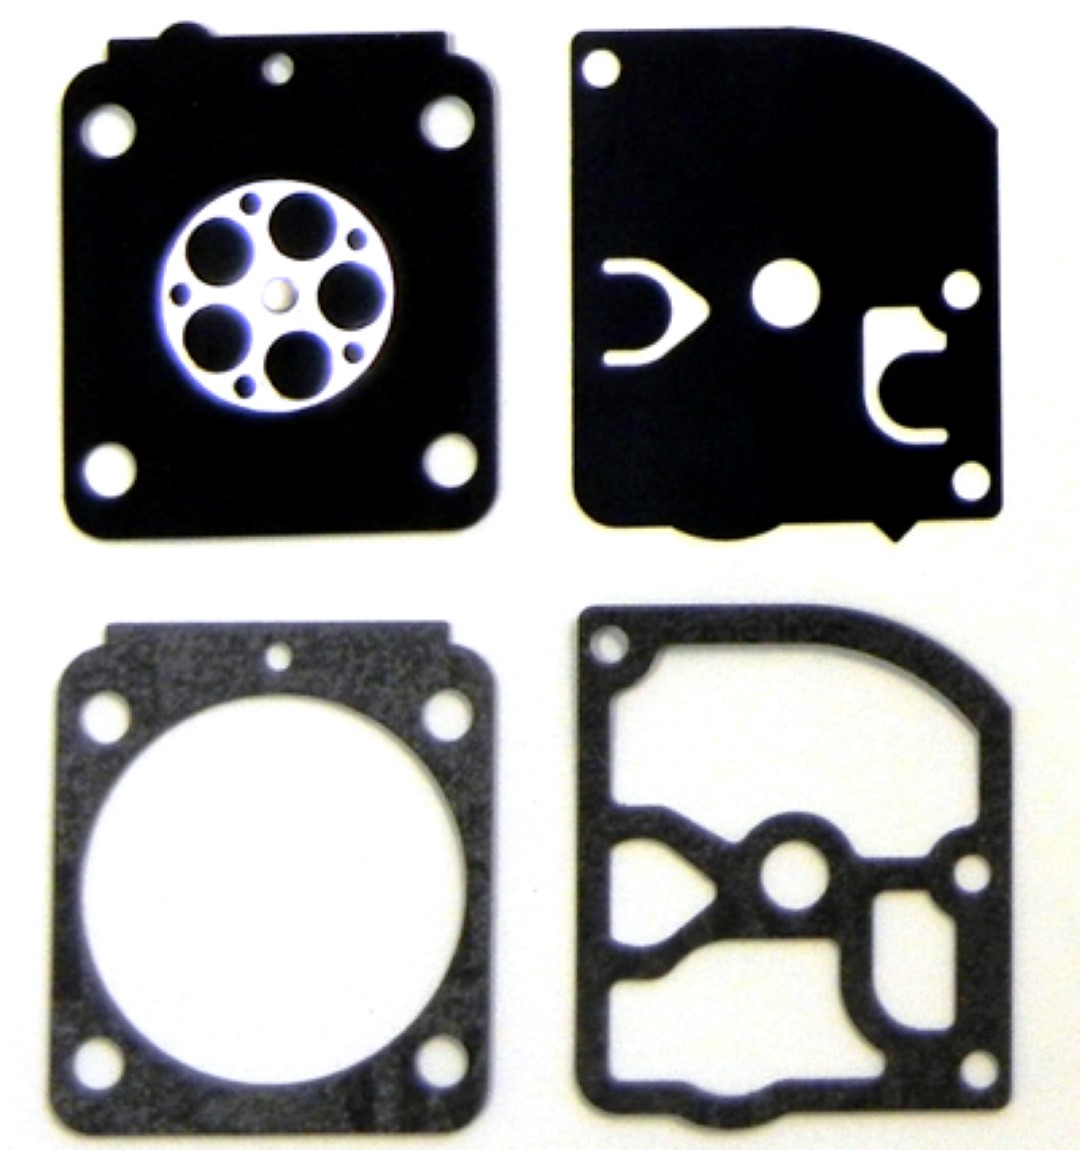 Replacement gasket and diaphragm kit GND-56